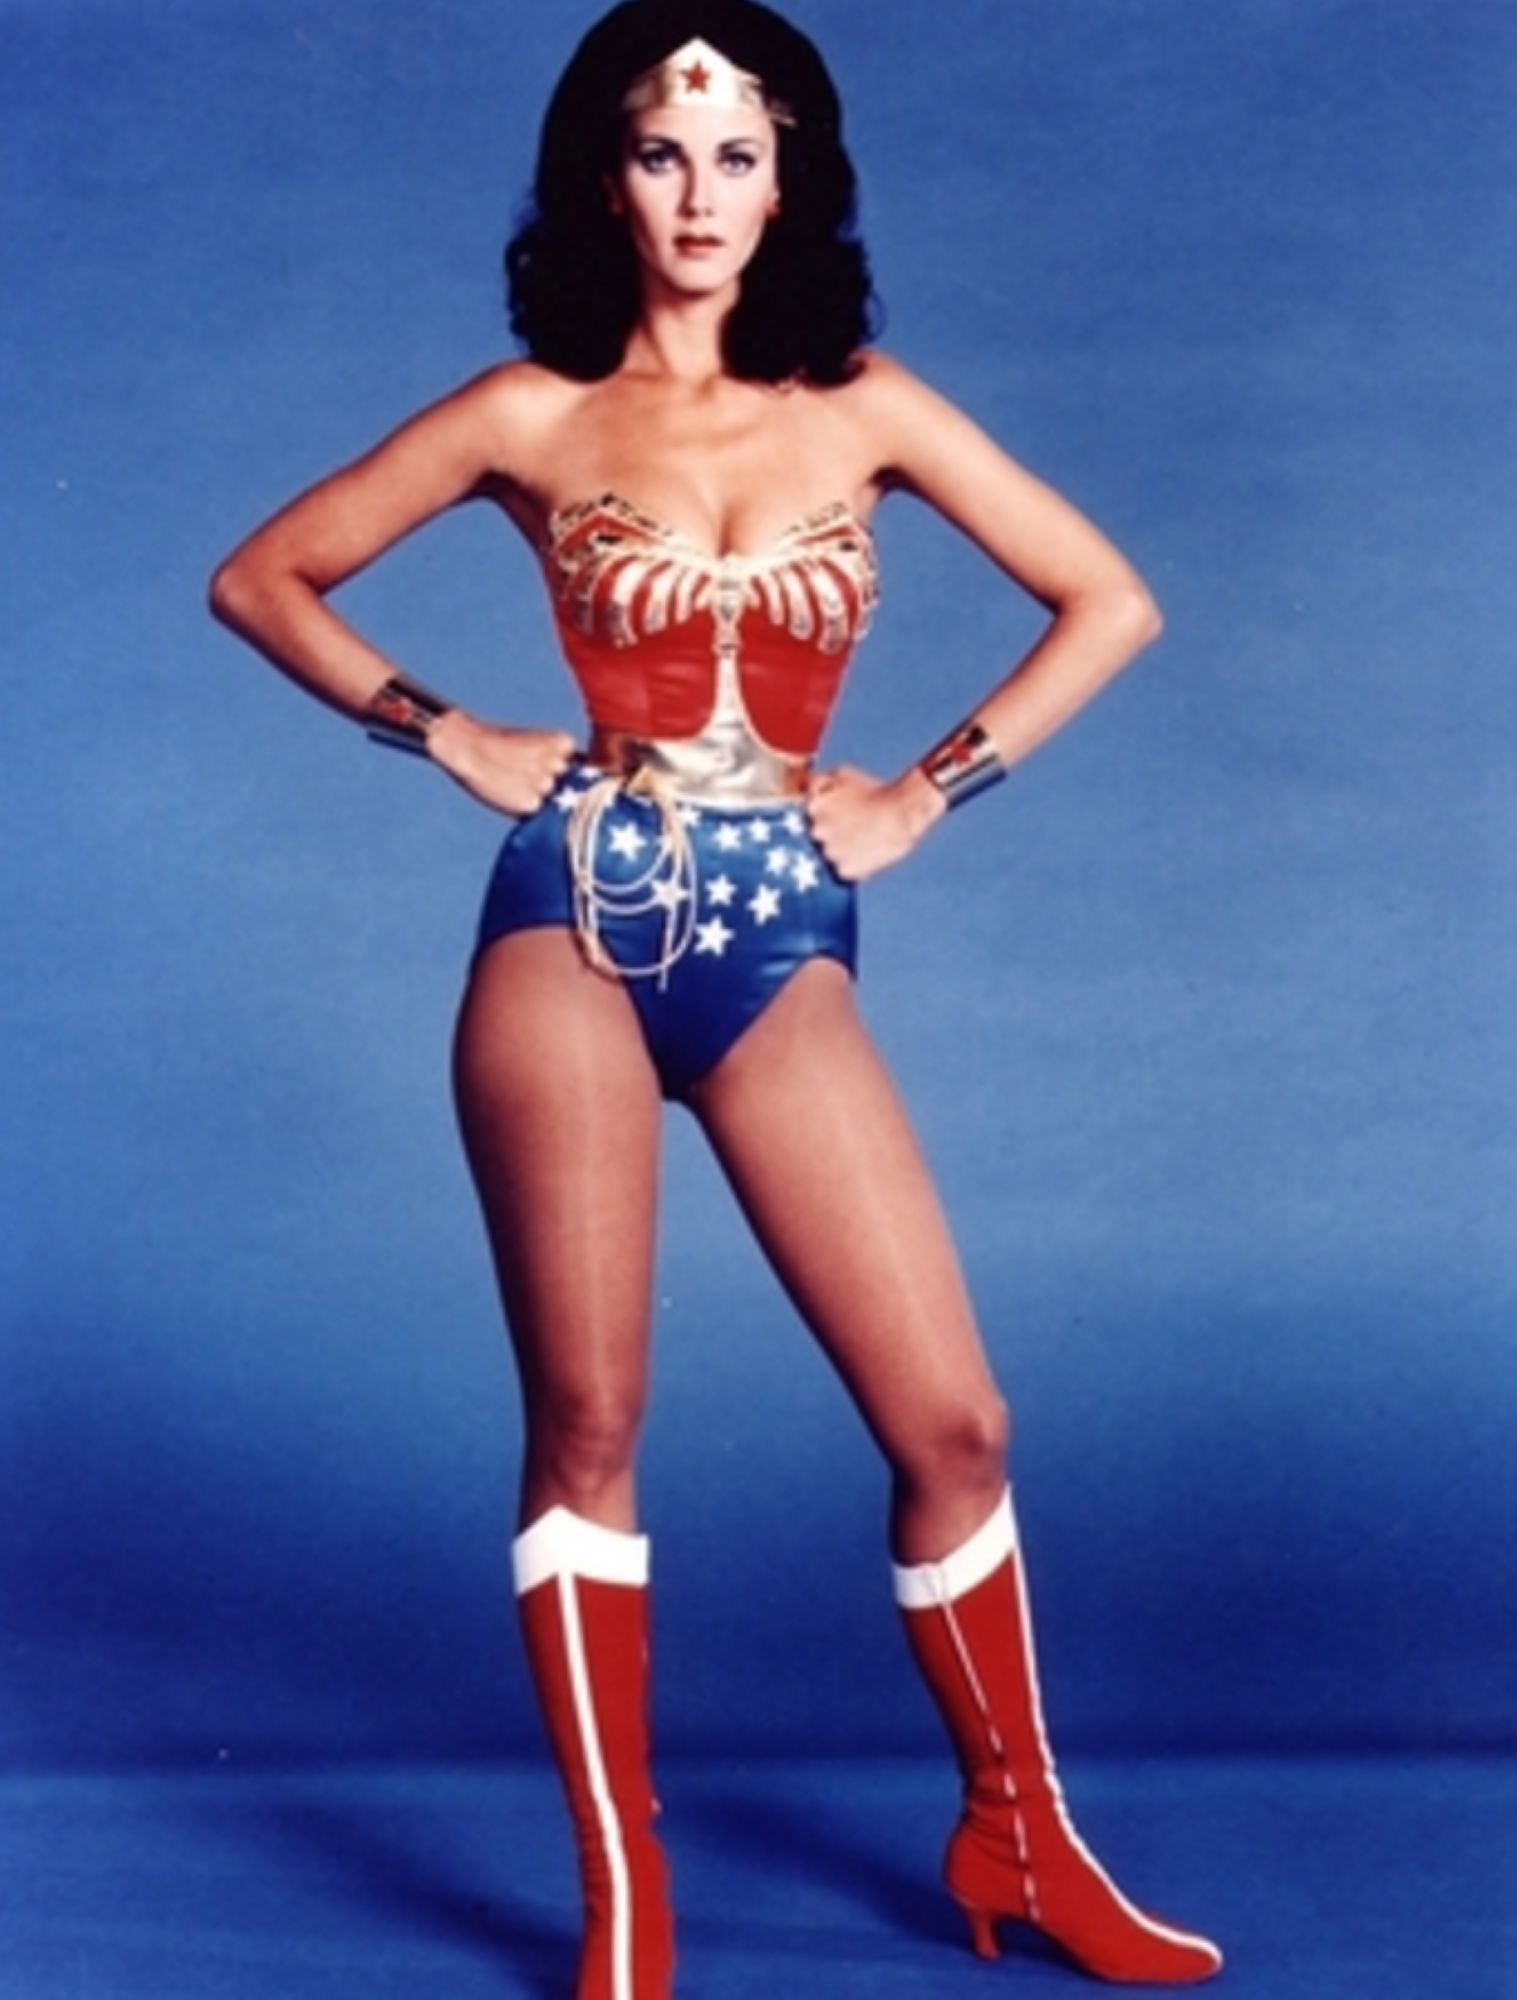 06-Lynda-Carter-Wonder-Woman.jpg